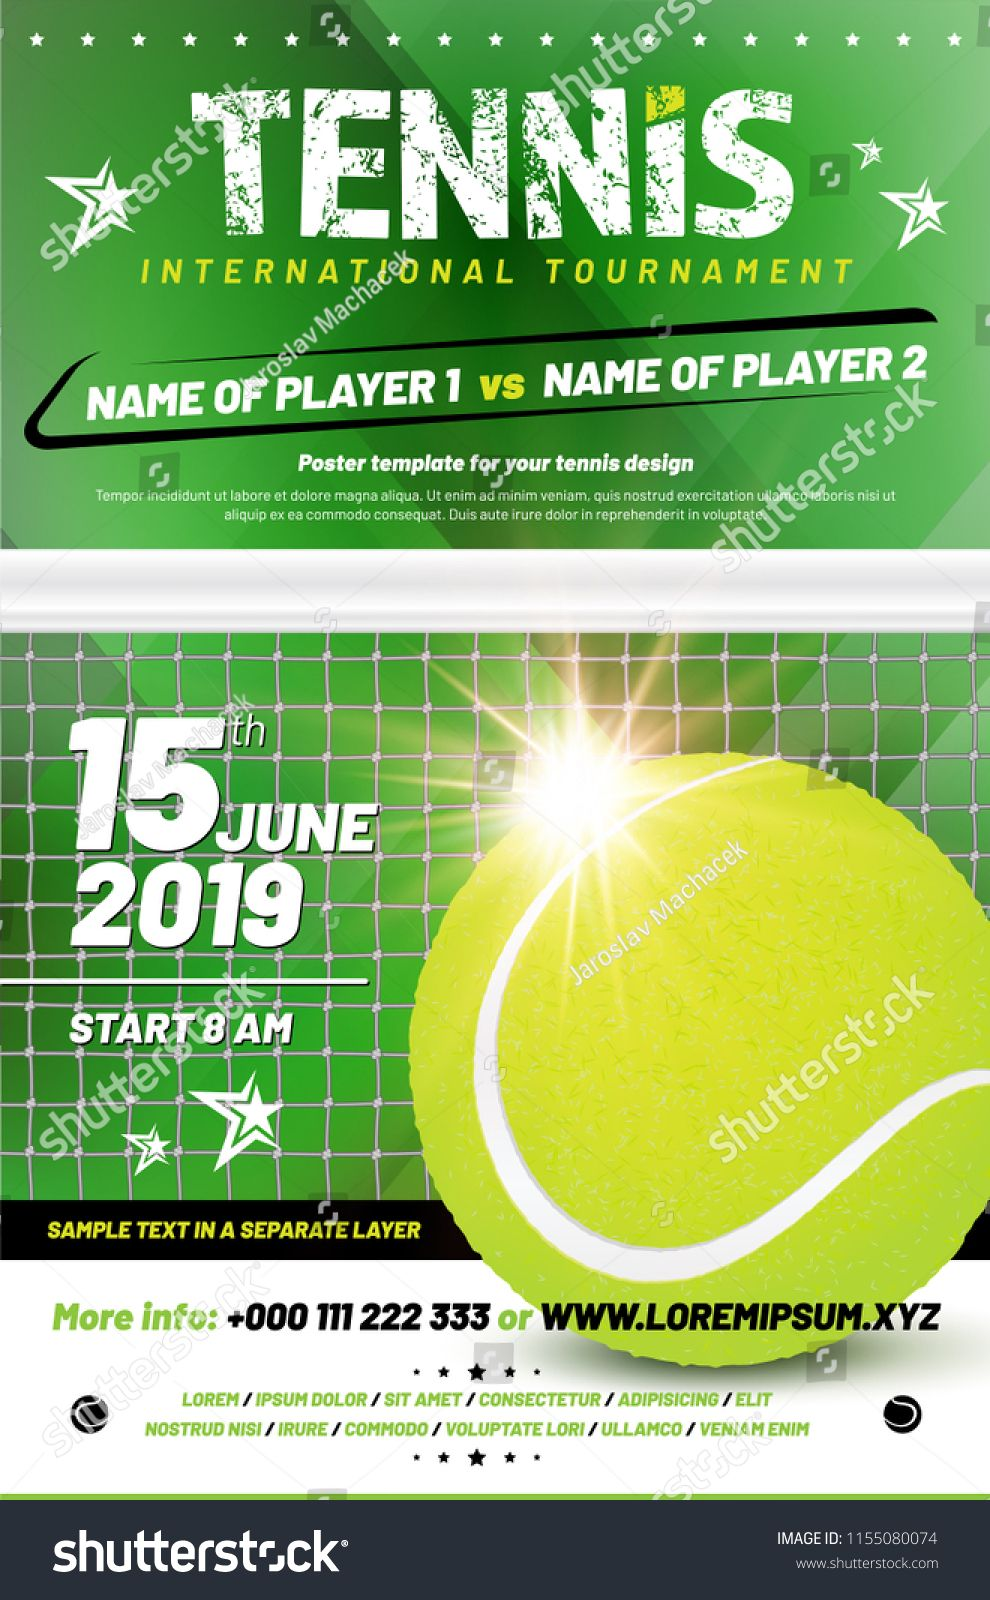 Tennis Tournament Poster Template With Sample Text In Separate Layer Vector Illustration Ad Ad Te Poster Template Templates Responsive Website Template